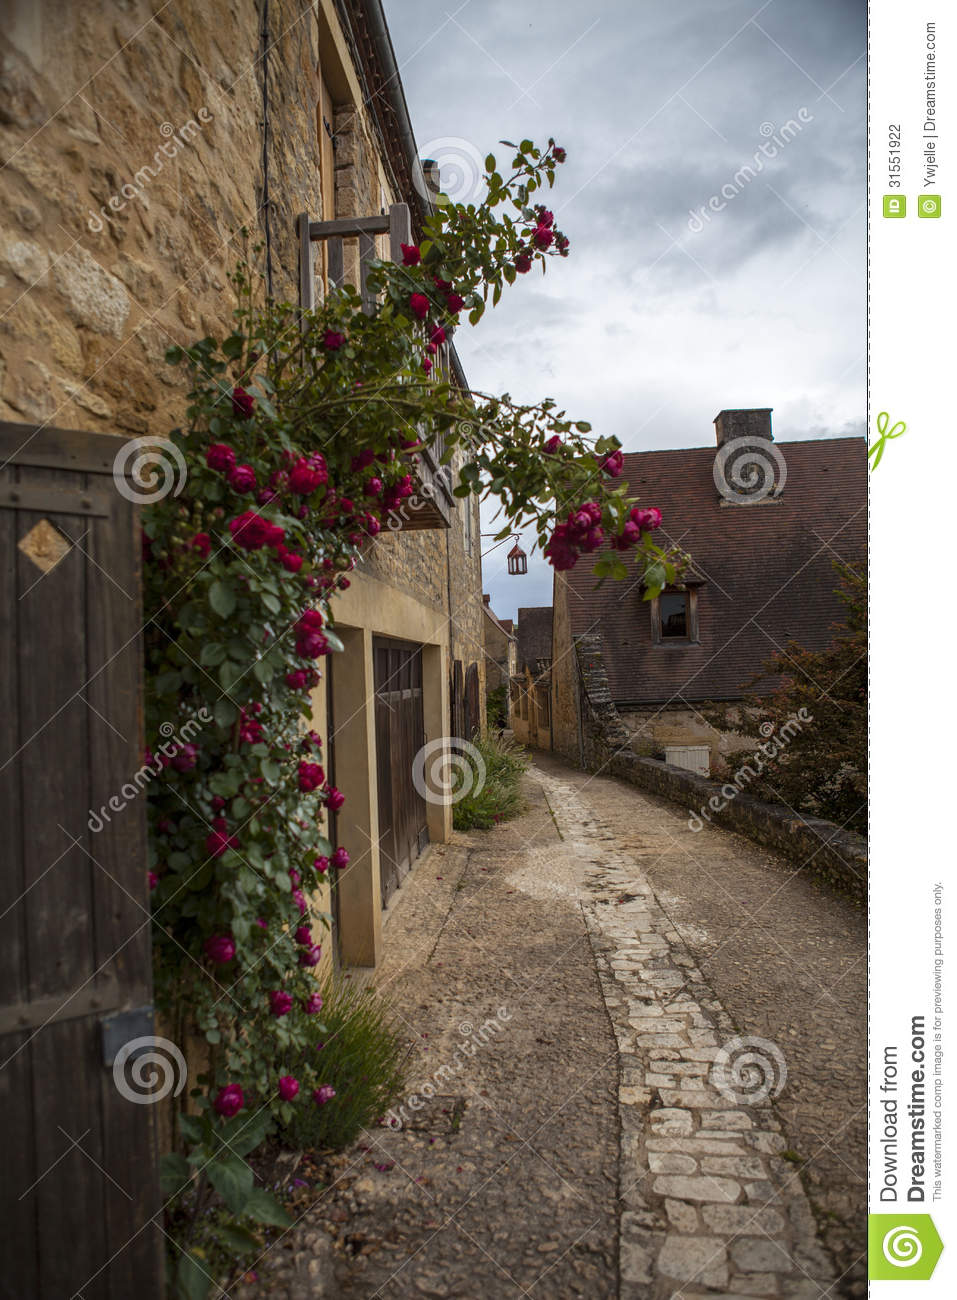 Home Time Road Roblox Id: House And Road With Flowers In Beynac France Stock